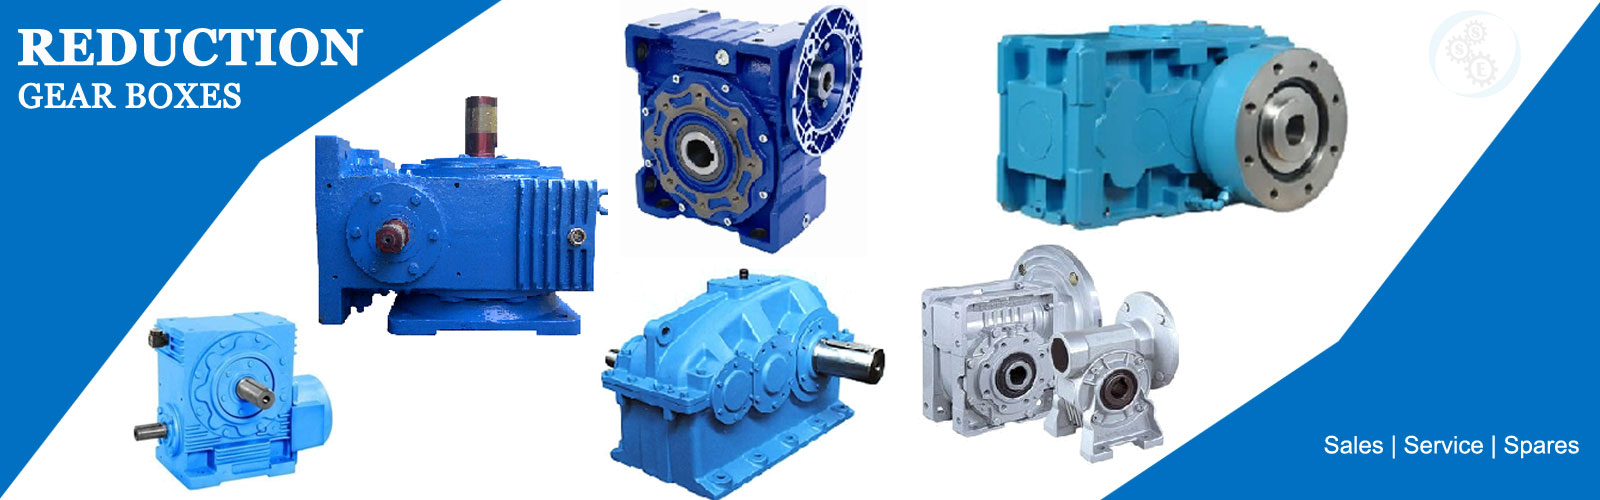 reduction_gear_boxesl_sai_seva_engineers